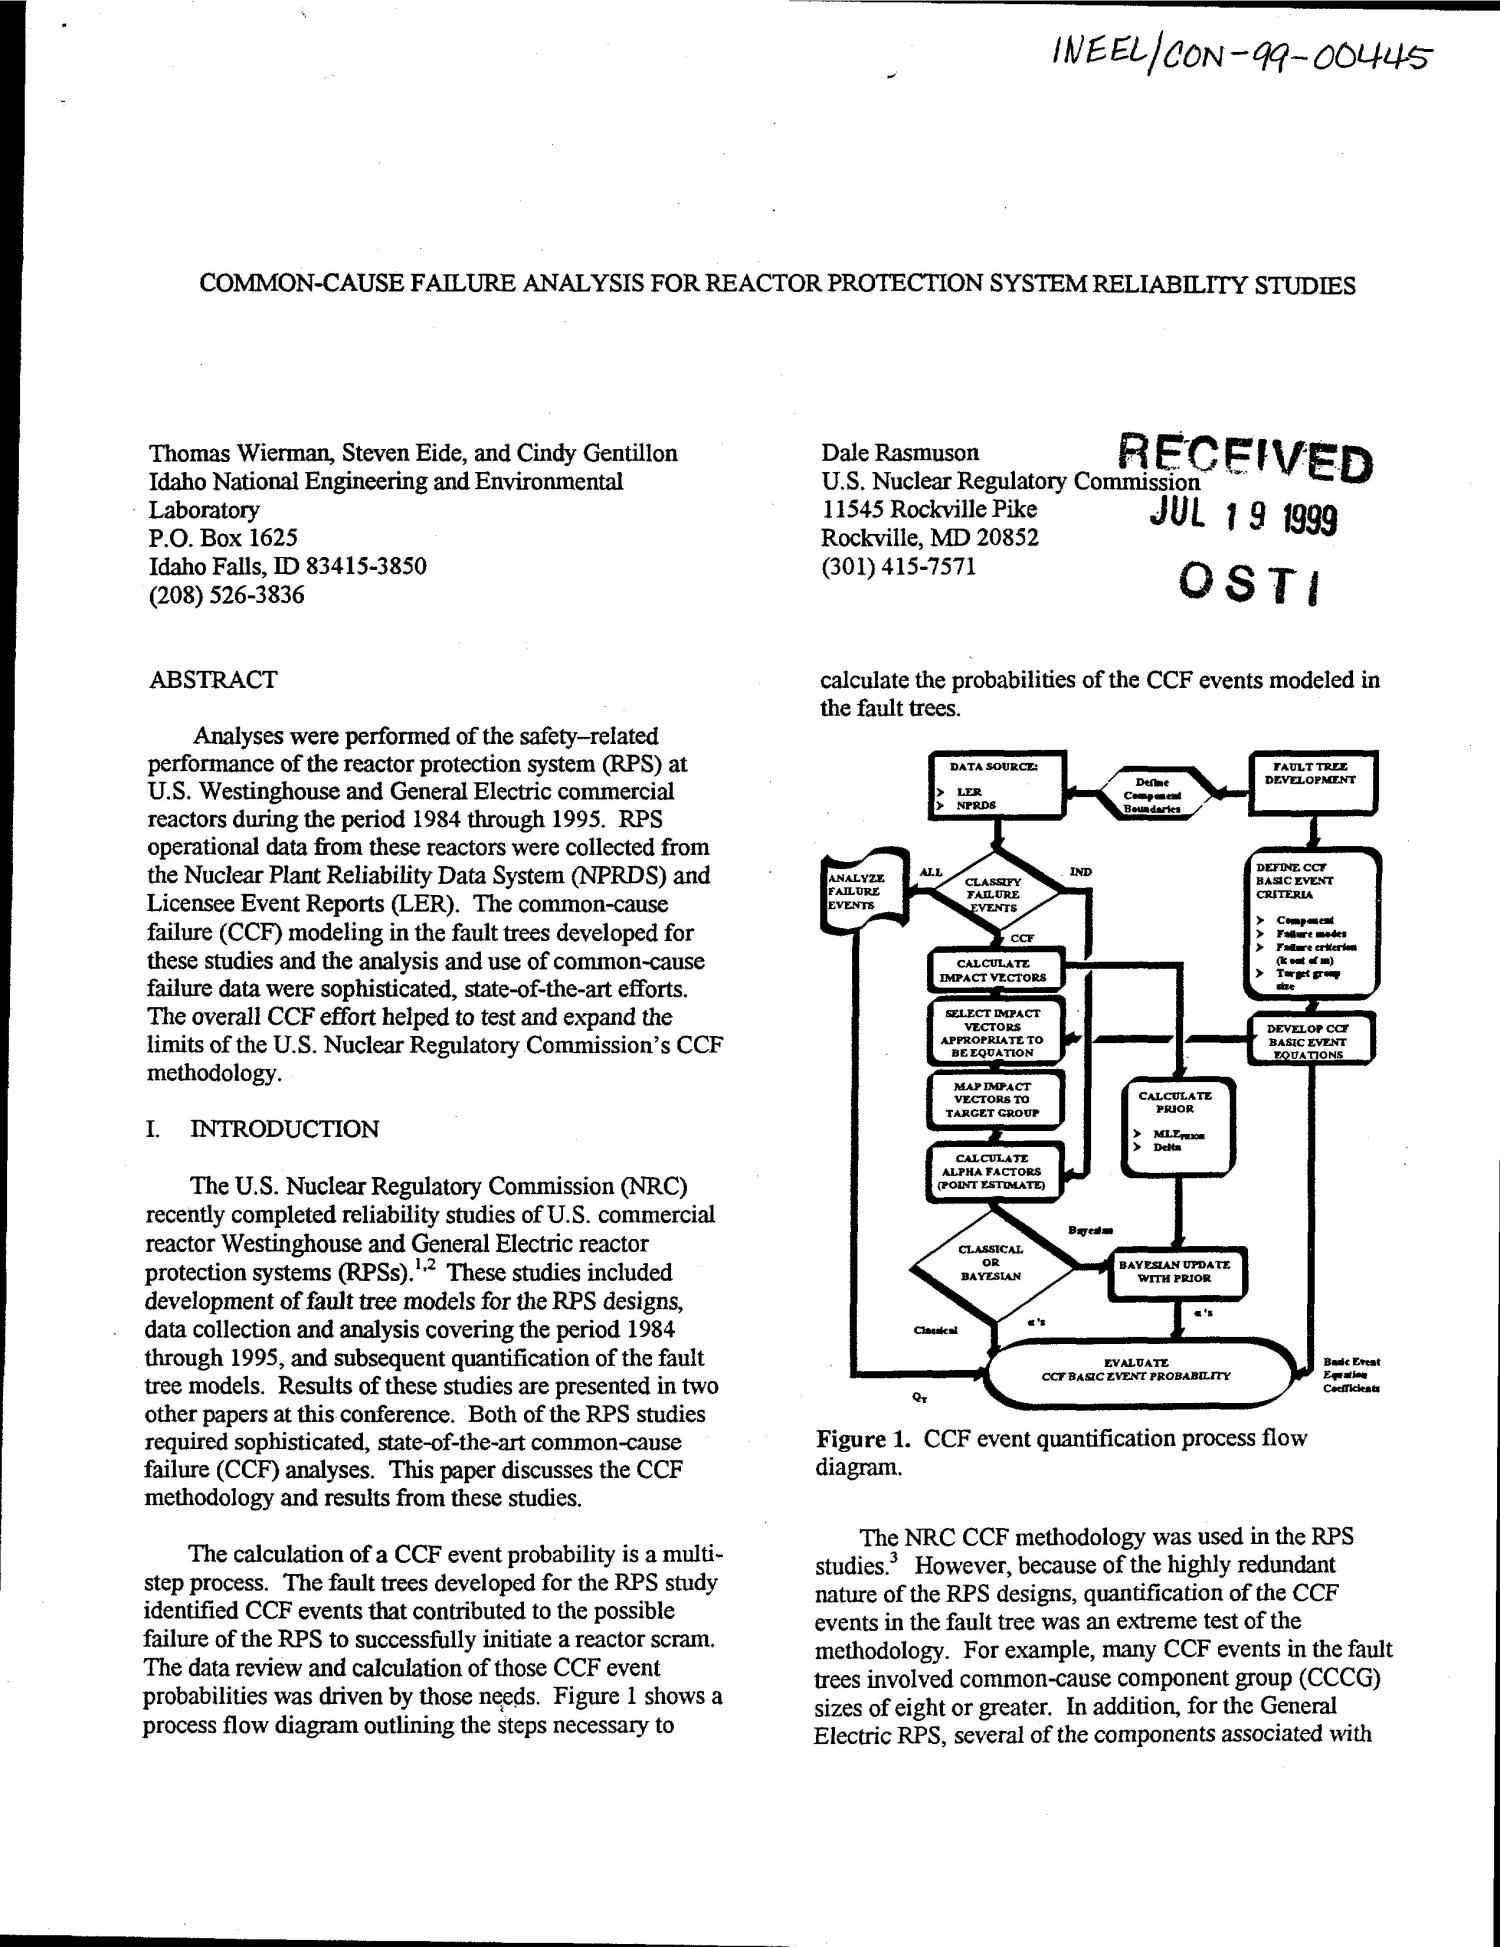 Common Cause Failure Analysis For Reactor Protection System Process Flow Diagram Reliability Studies Digital Library